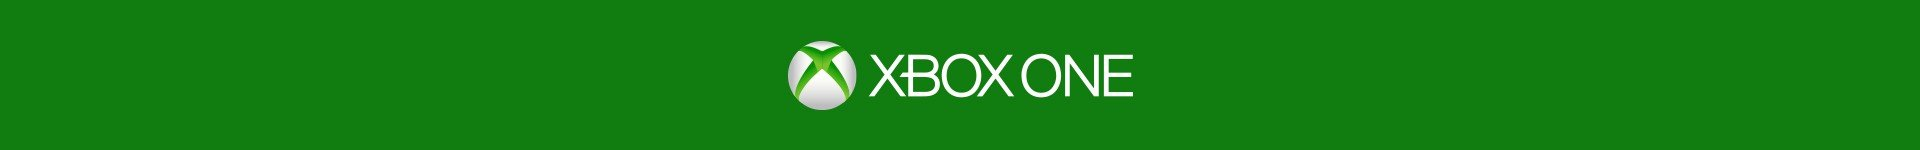 Buy Xbox One games at Coolshop